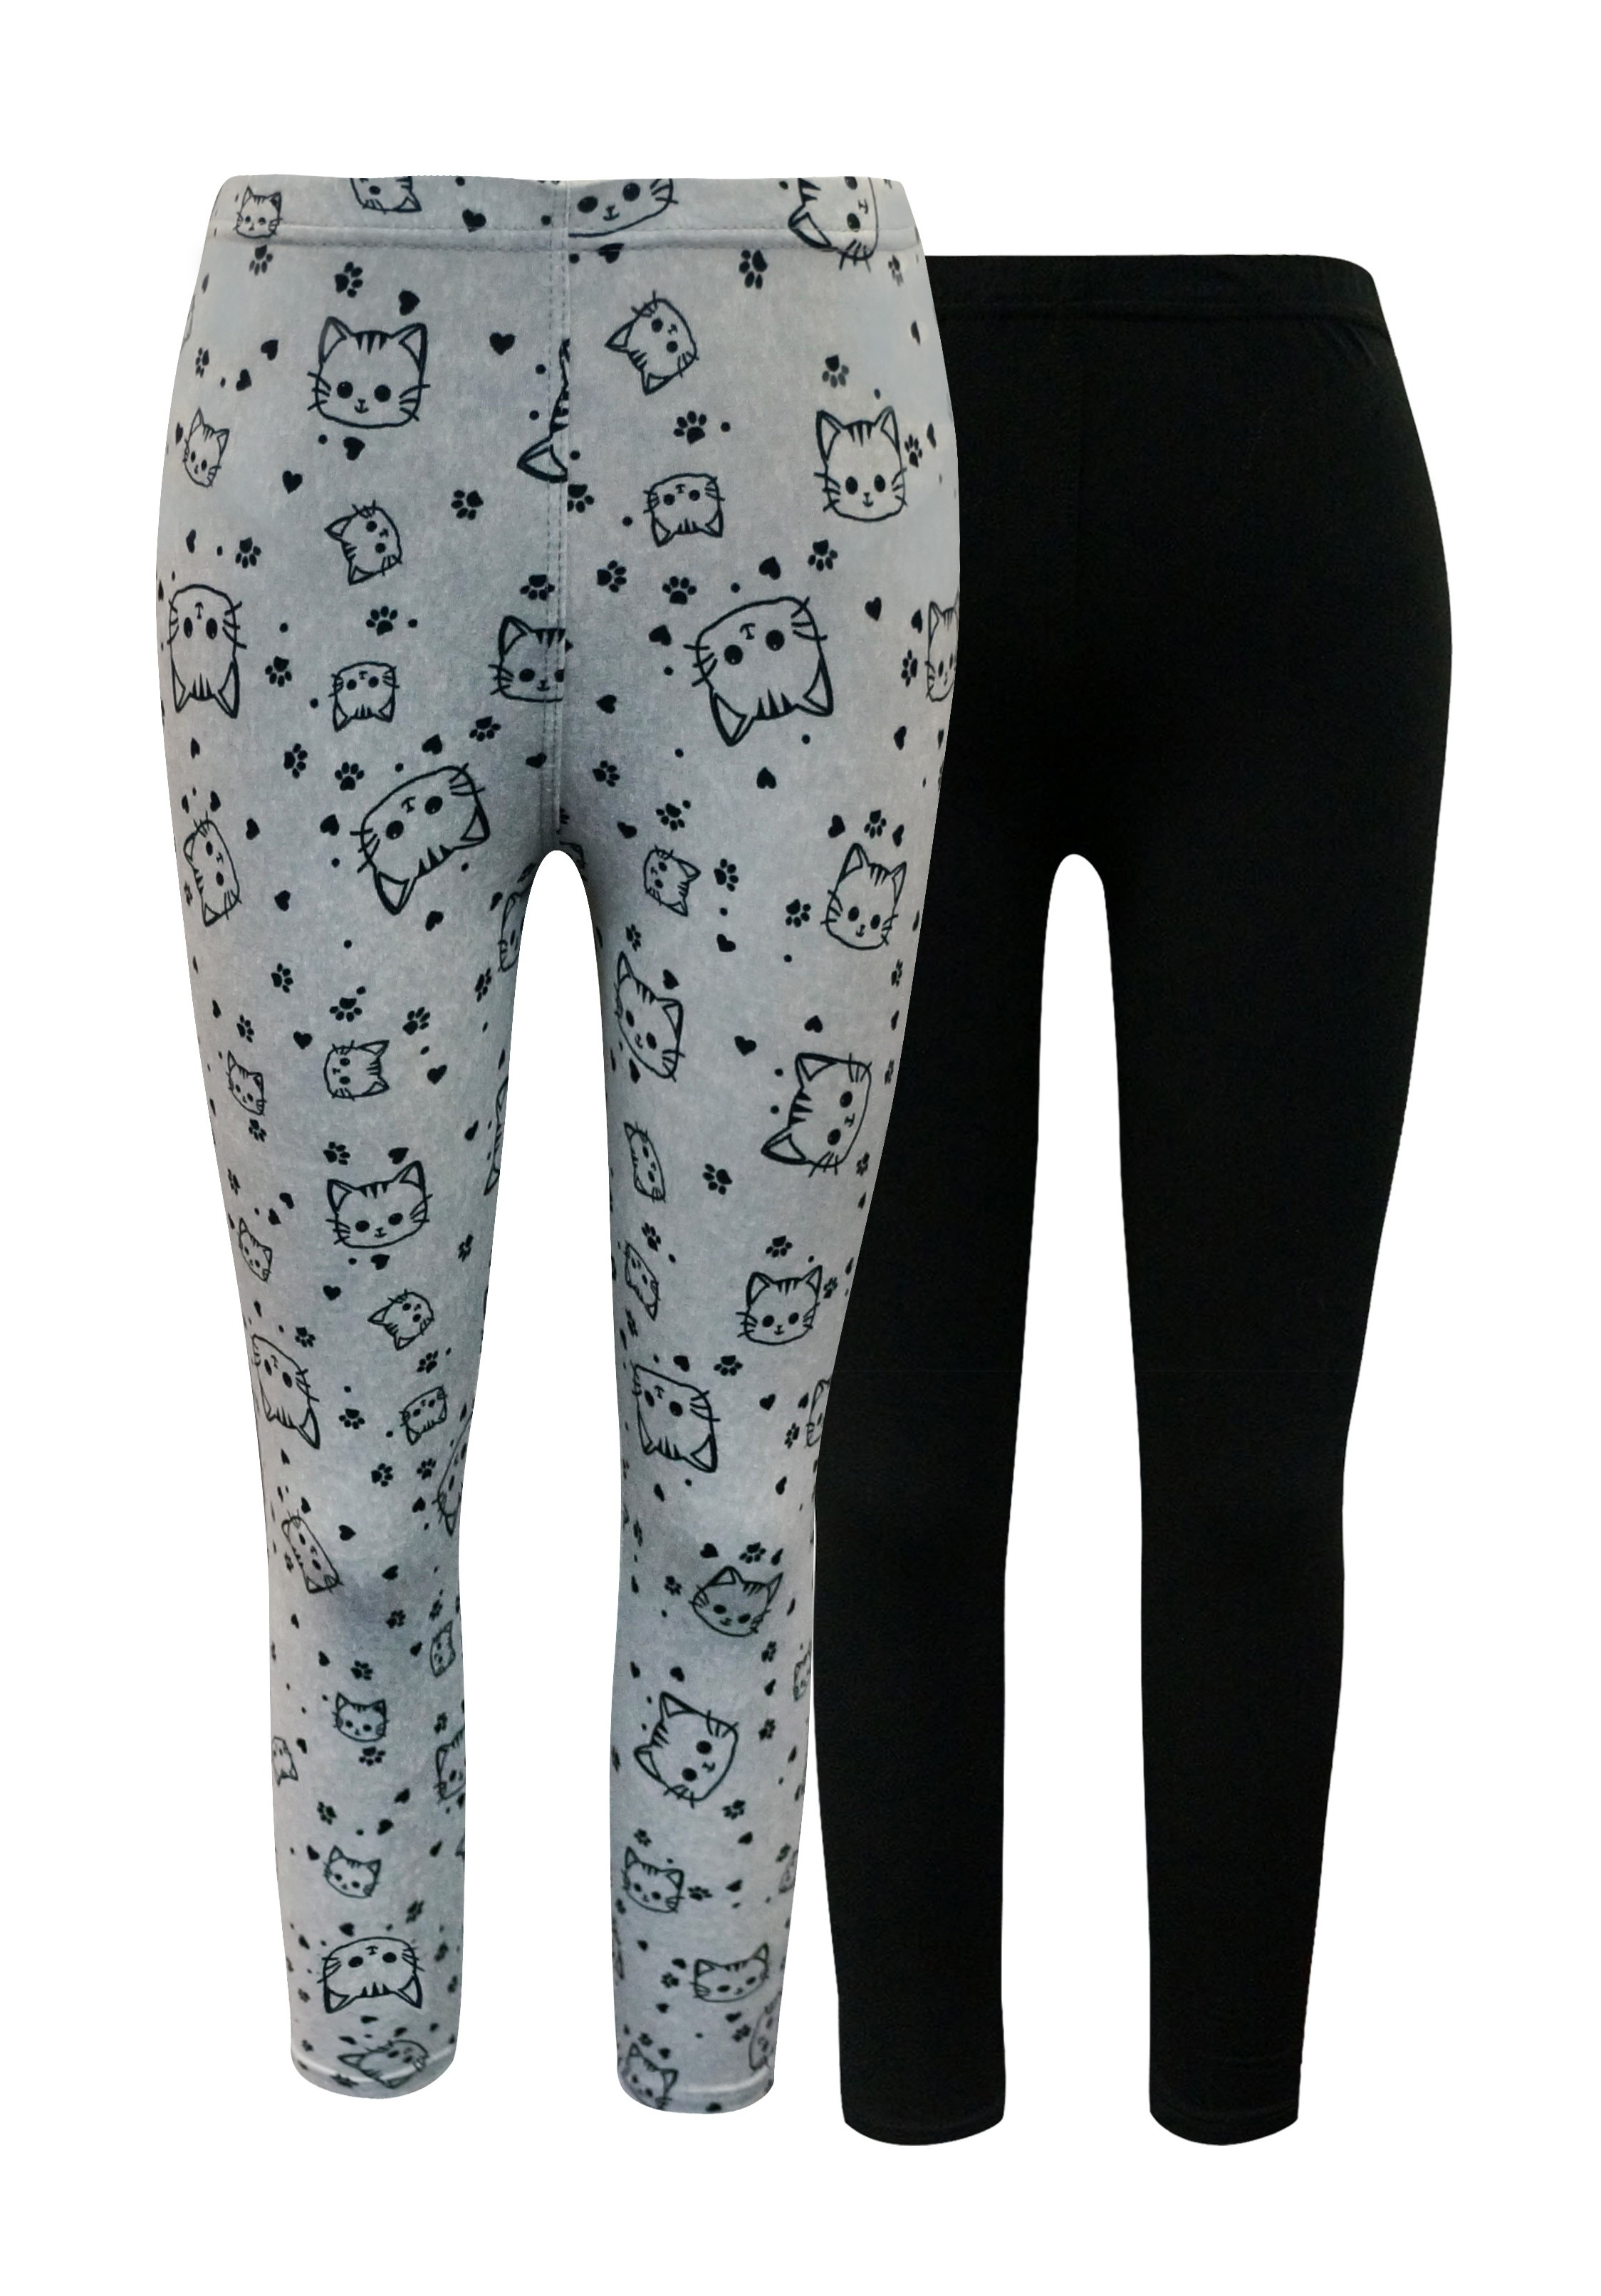 KIDS 2PACK SOLID BLACK & HEATER GREY CAT PRINT BASIC LEGGING(4/5, 6/6X) #2K8L54-11